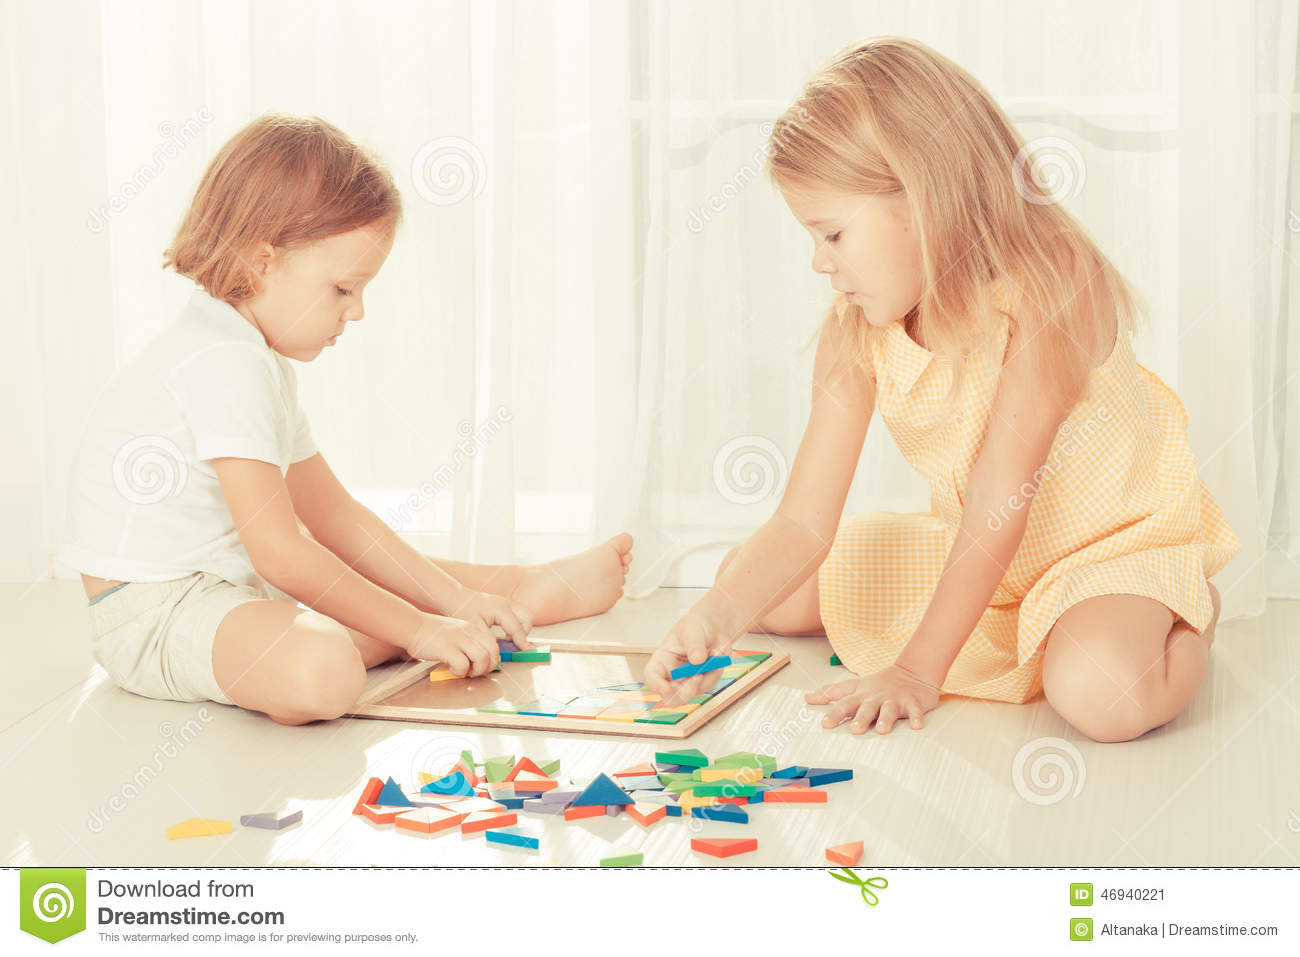 Two kids playing with wooden mosaic in their room